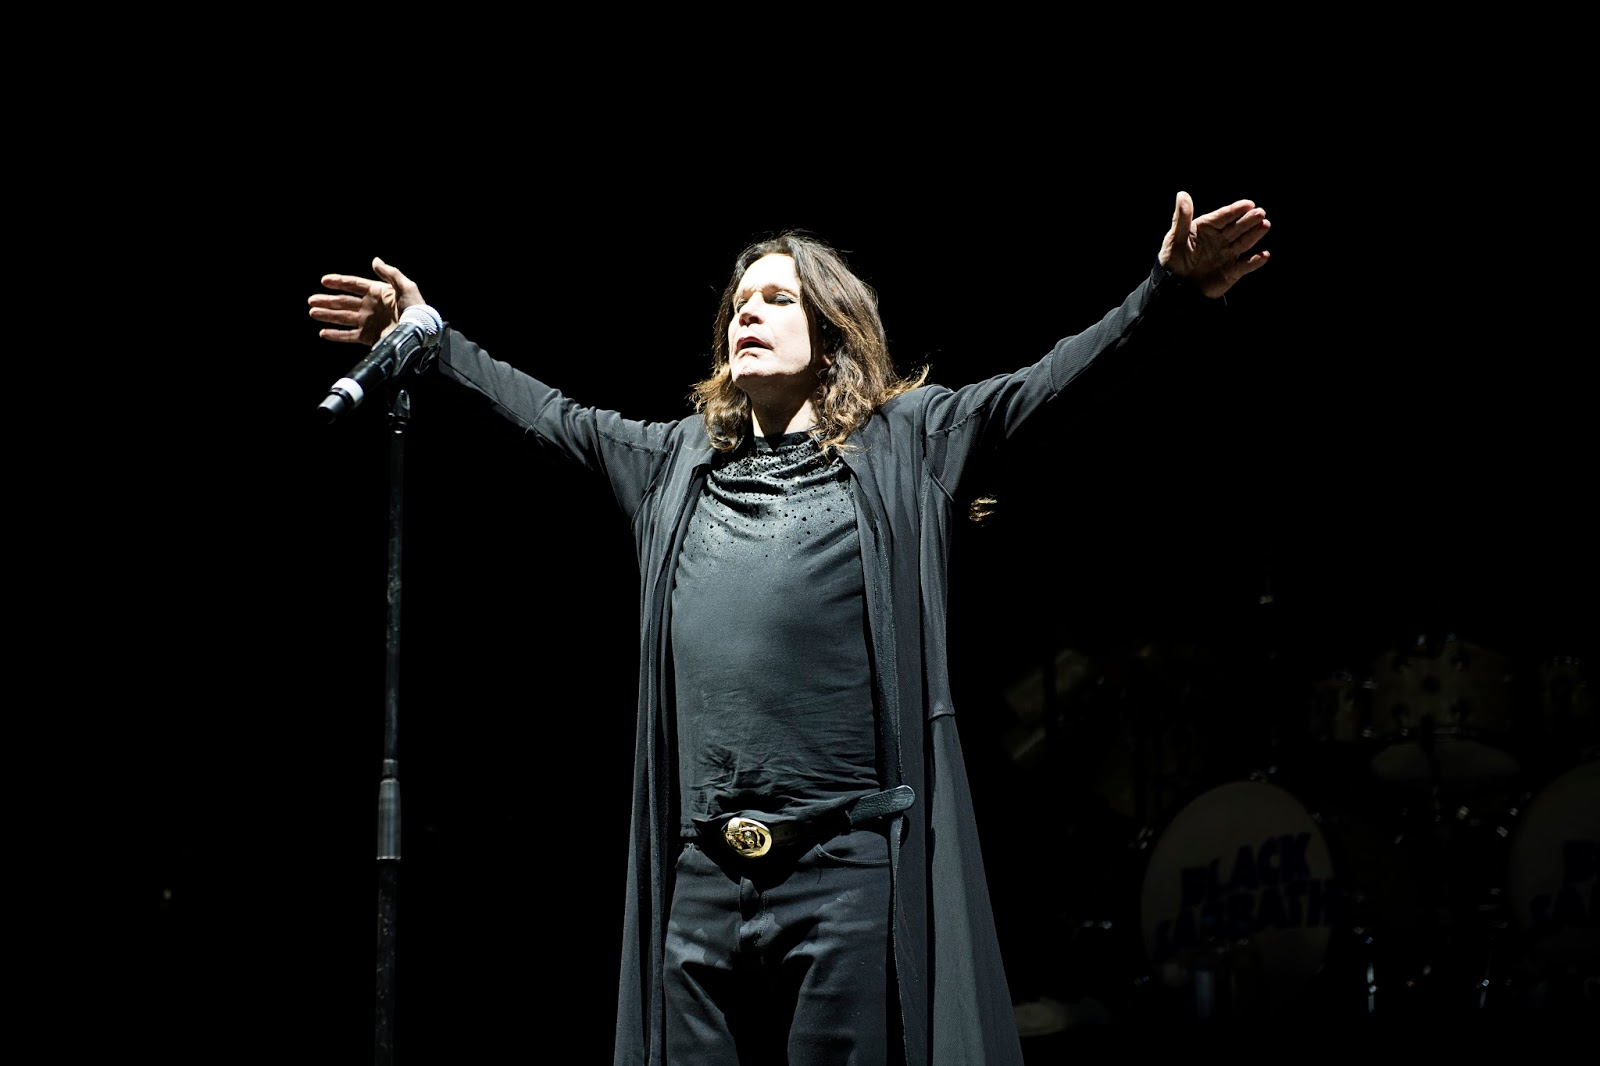 Black sabbath last so cal show photo gallery from ozzfest meets knotfest 2016